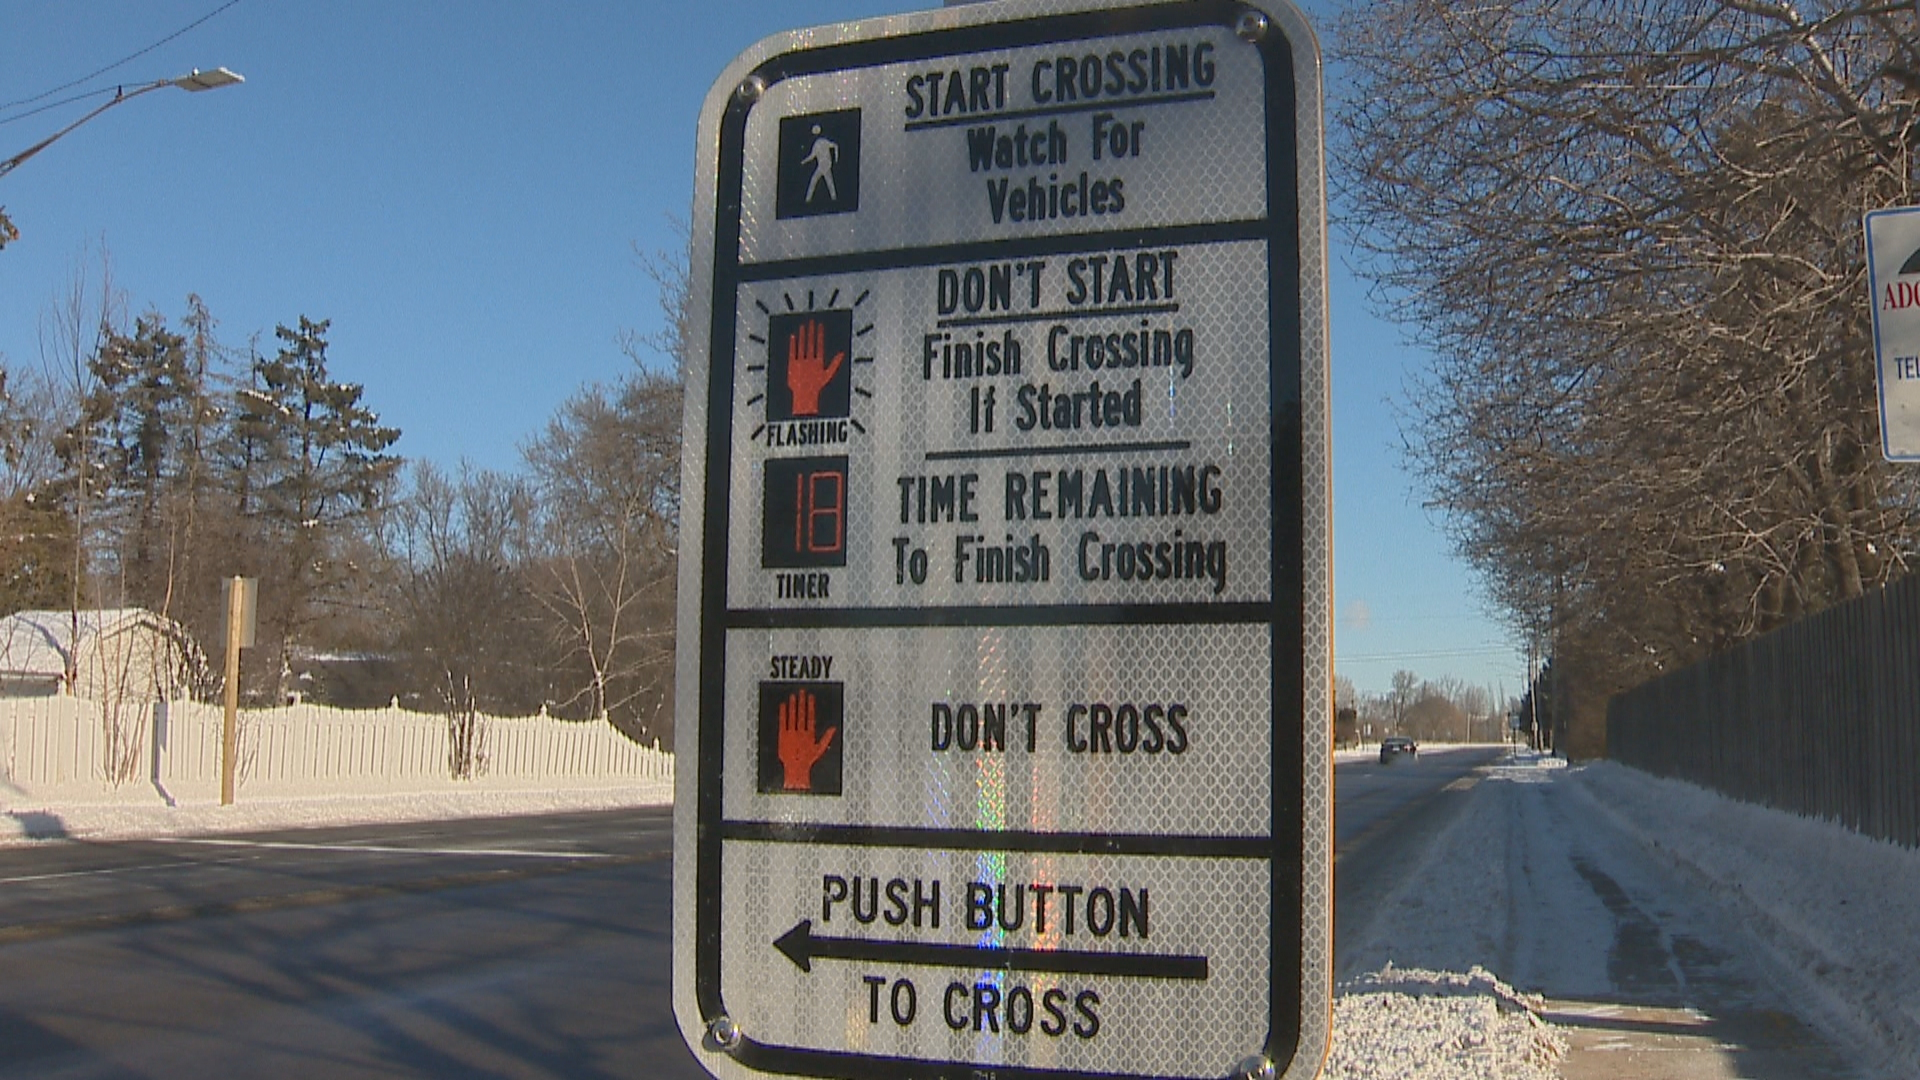 New pedestrian hybrid beacon on Riverside Drive in Allouez, February 6, 2018. (WLUK)